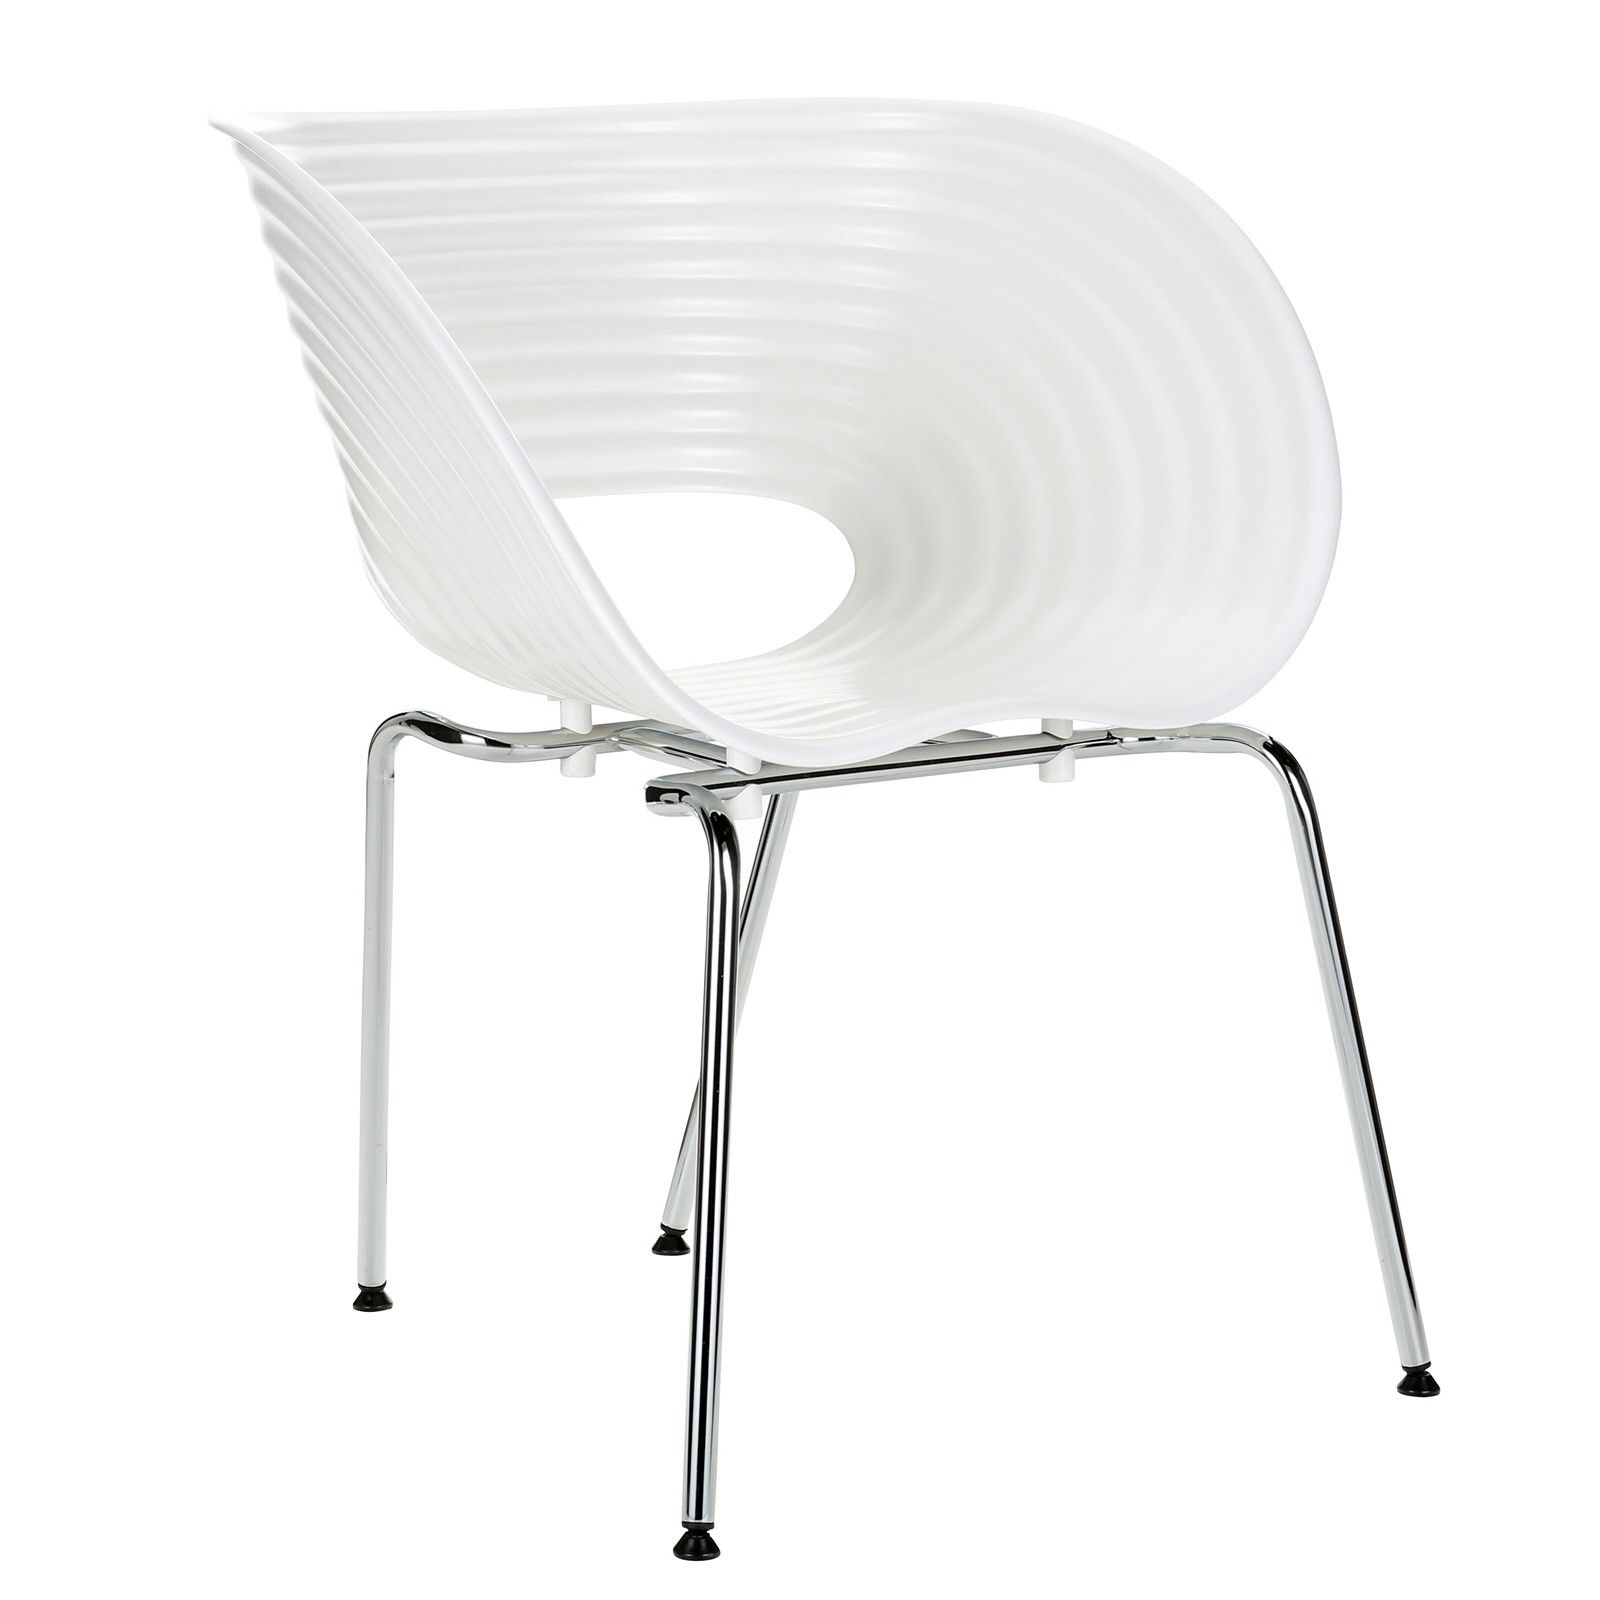 The Nick Scali Online Globe Chair | Dining Chairs | Nick ...